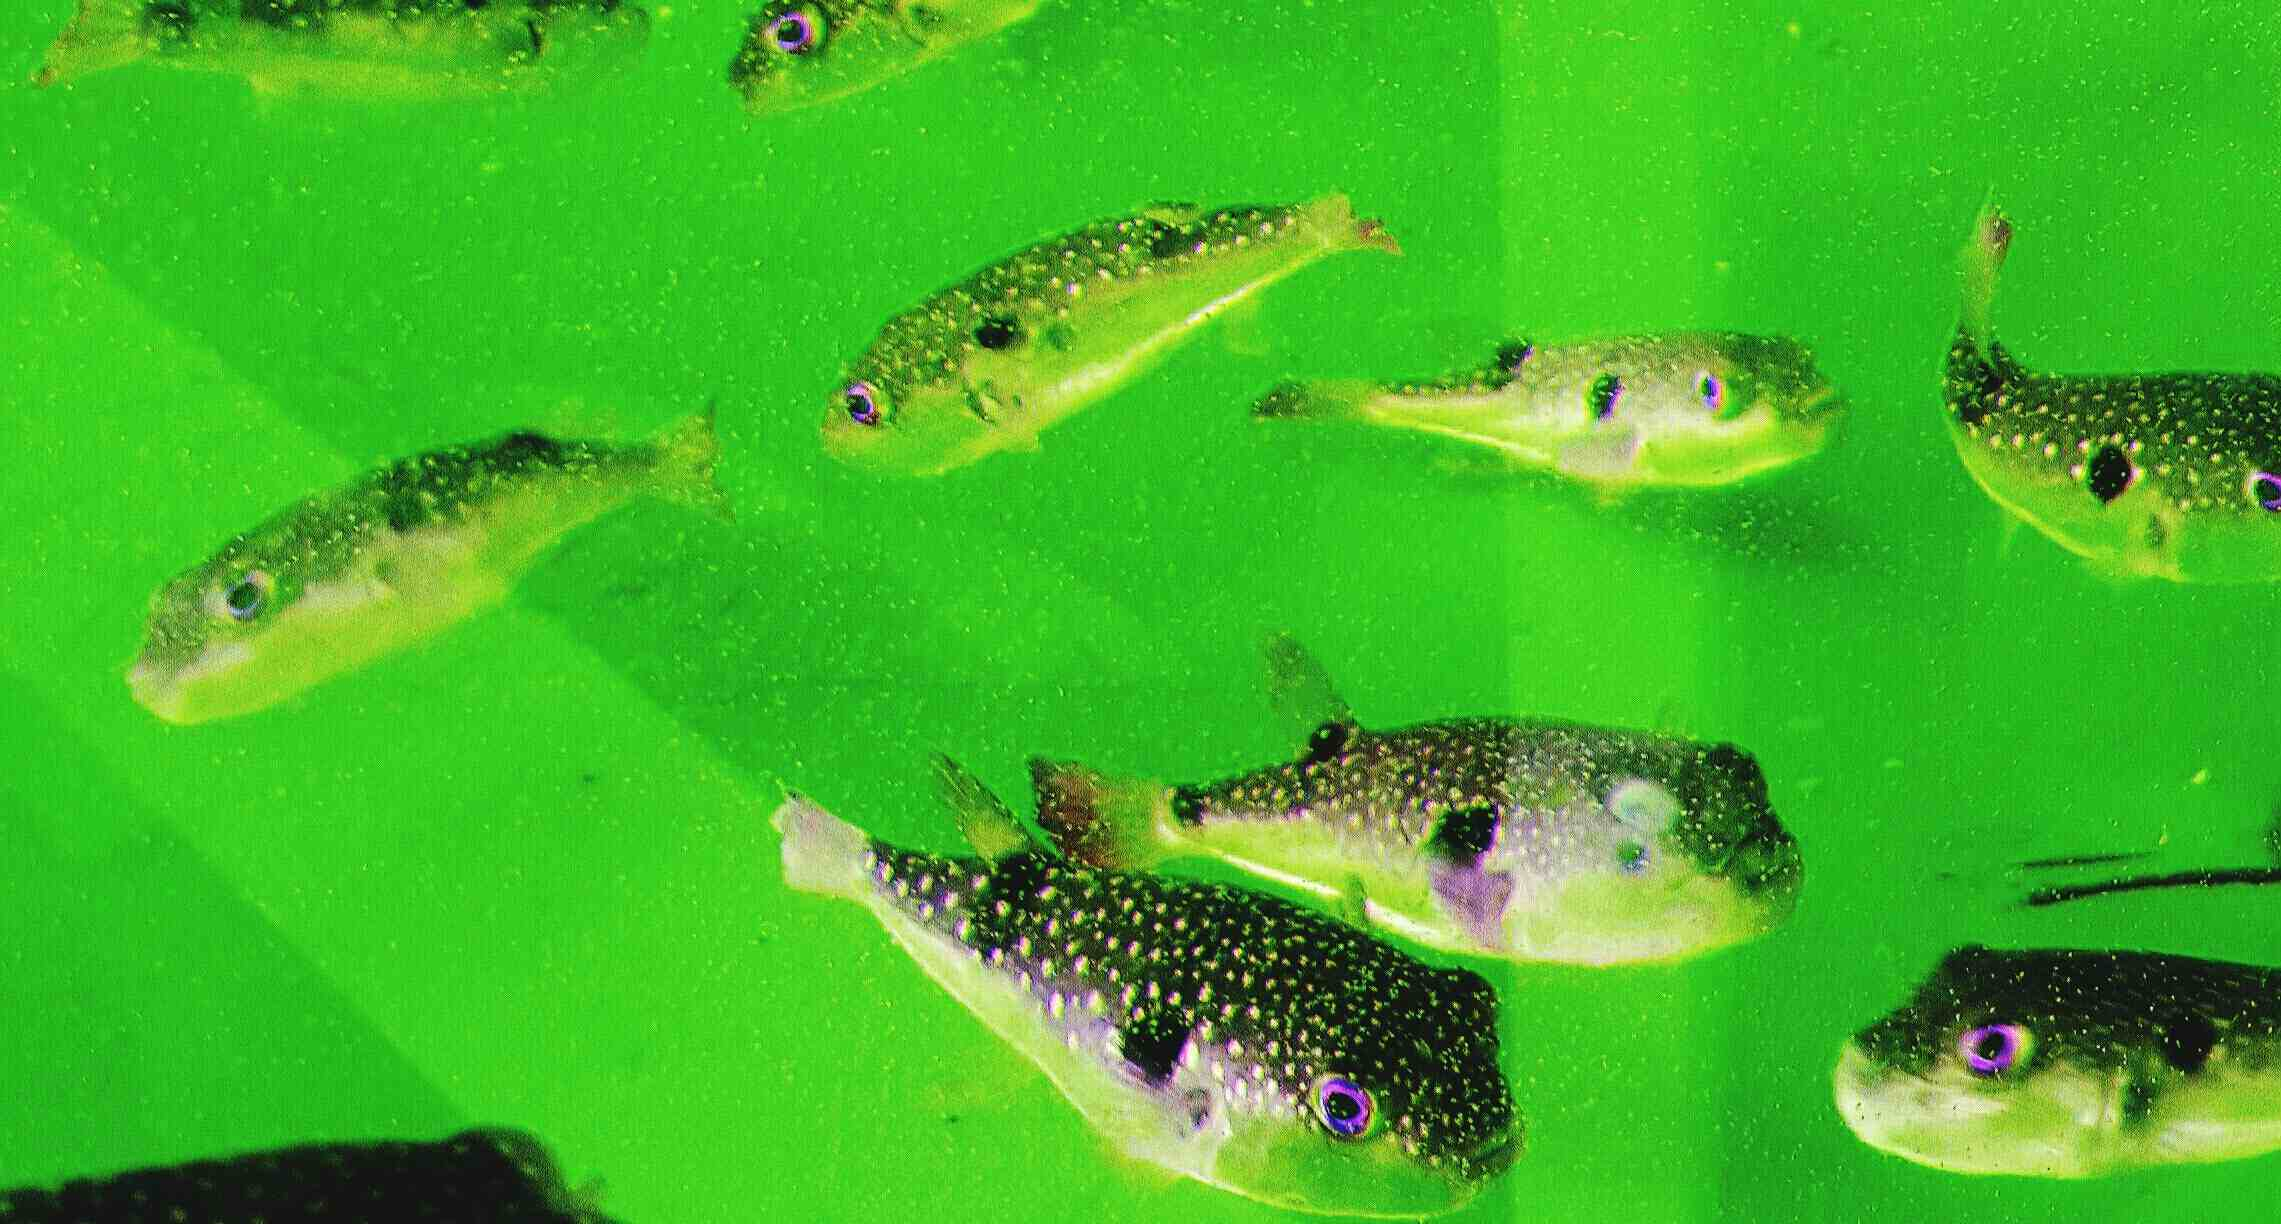 Green water in an aquarium with fish